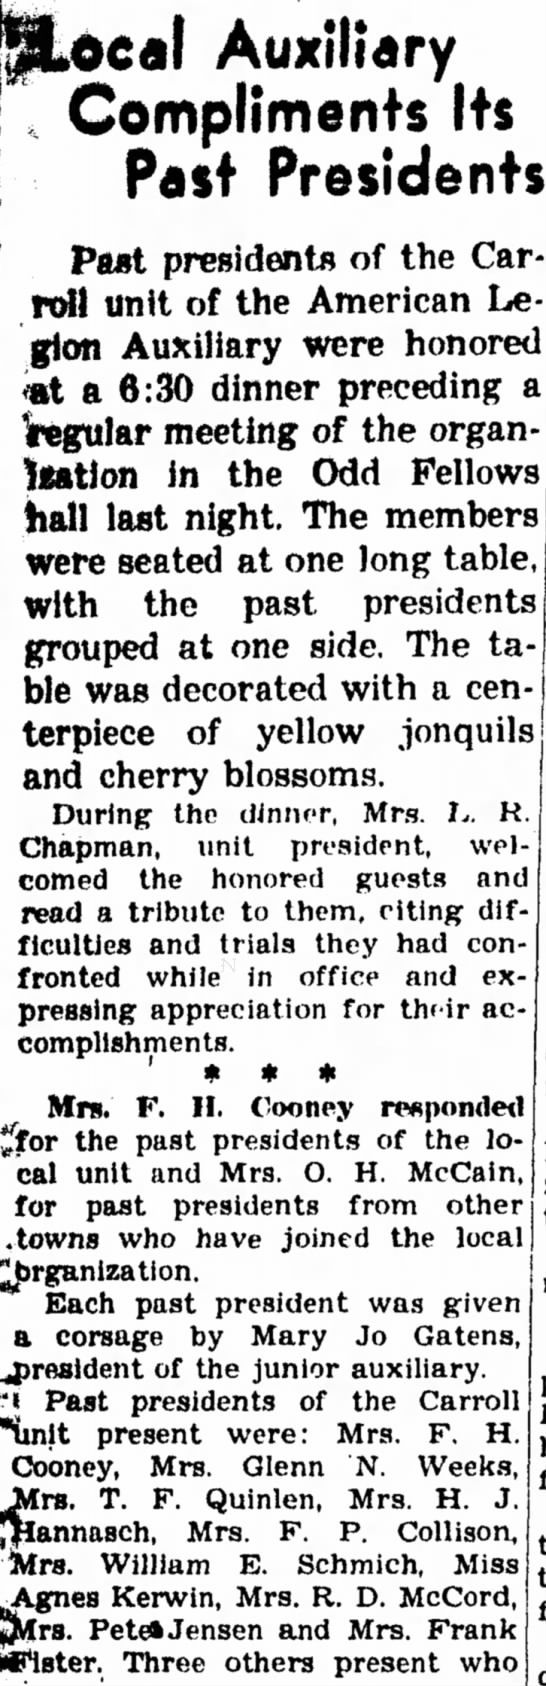 20 Apr 1945 Carrol Daily Times Herald Carroll, Iowa - teal Auxiliary Compliments Its Past Presidents...